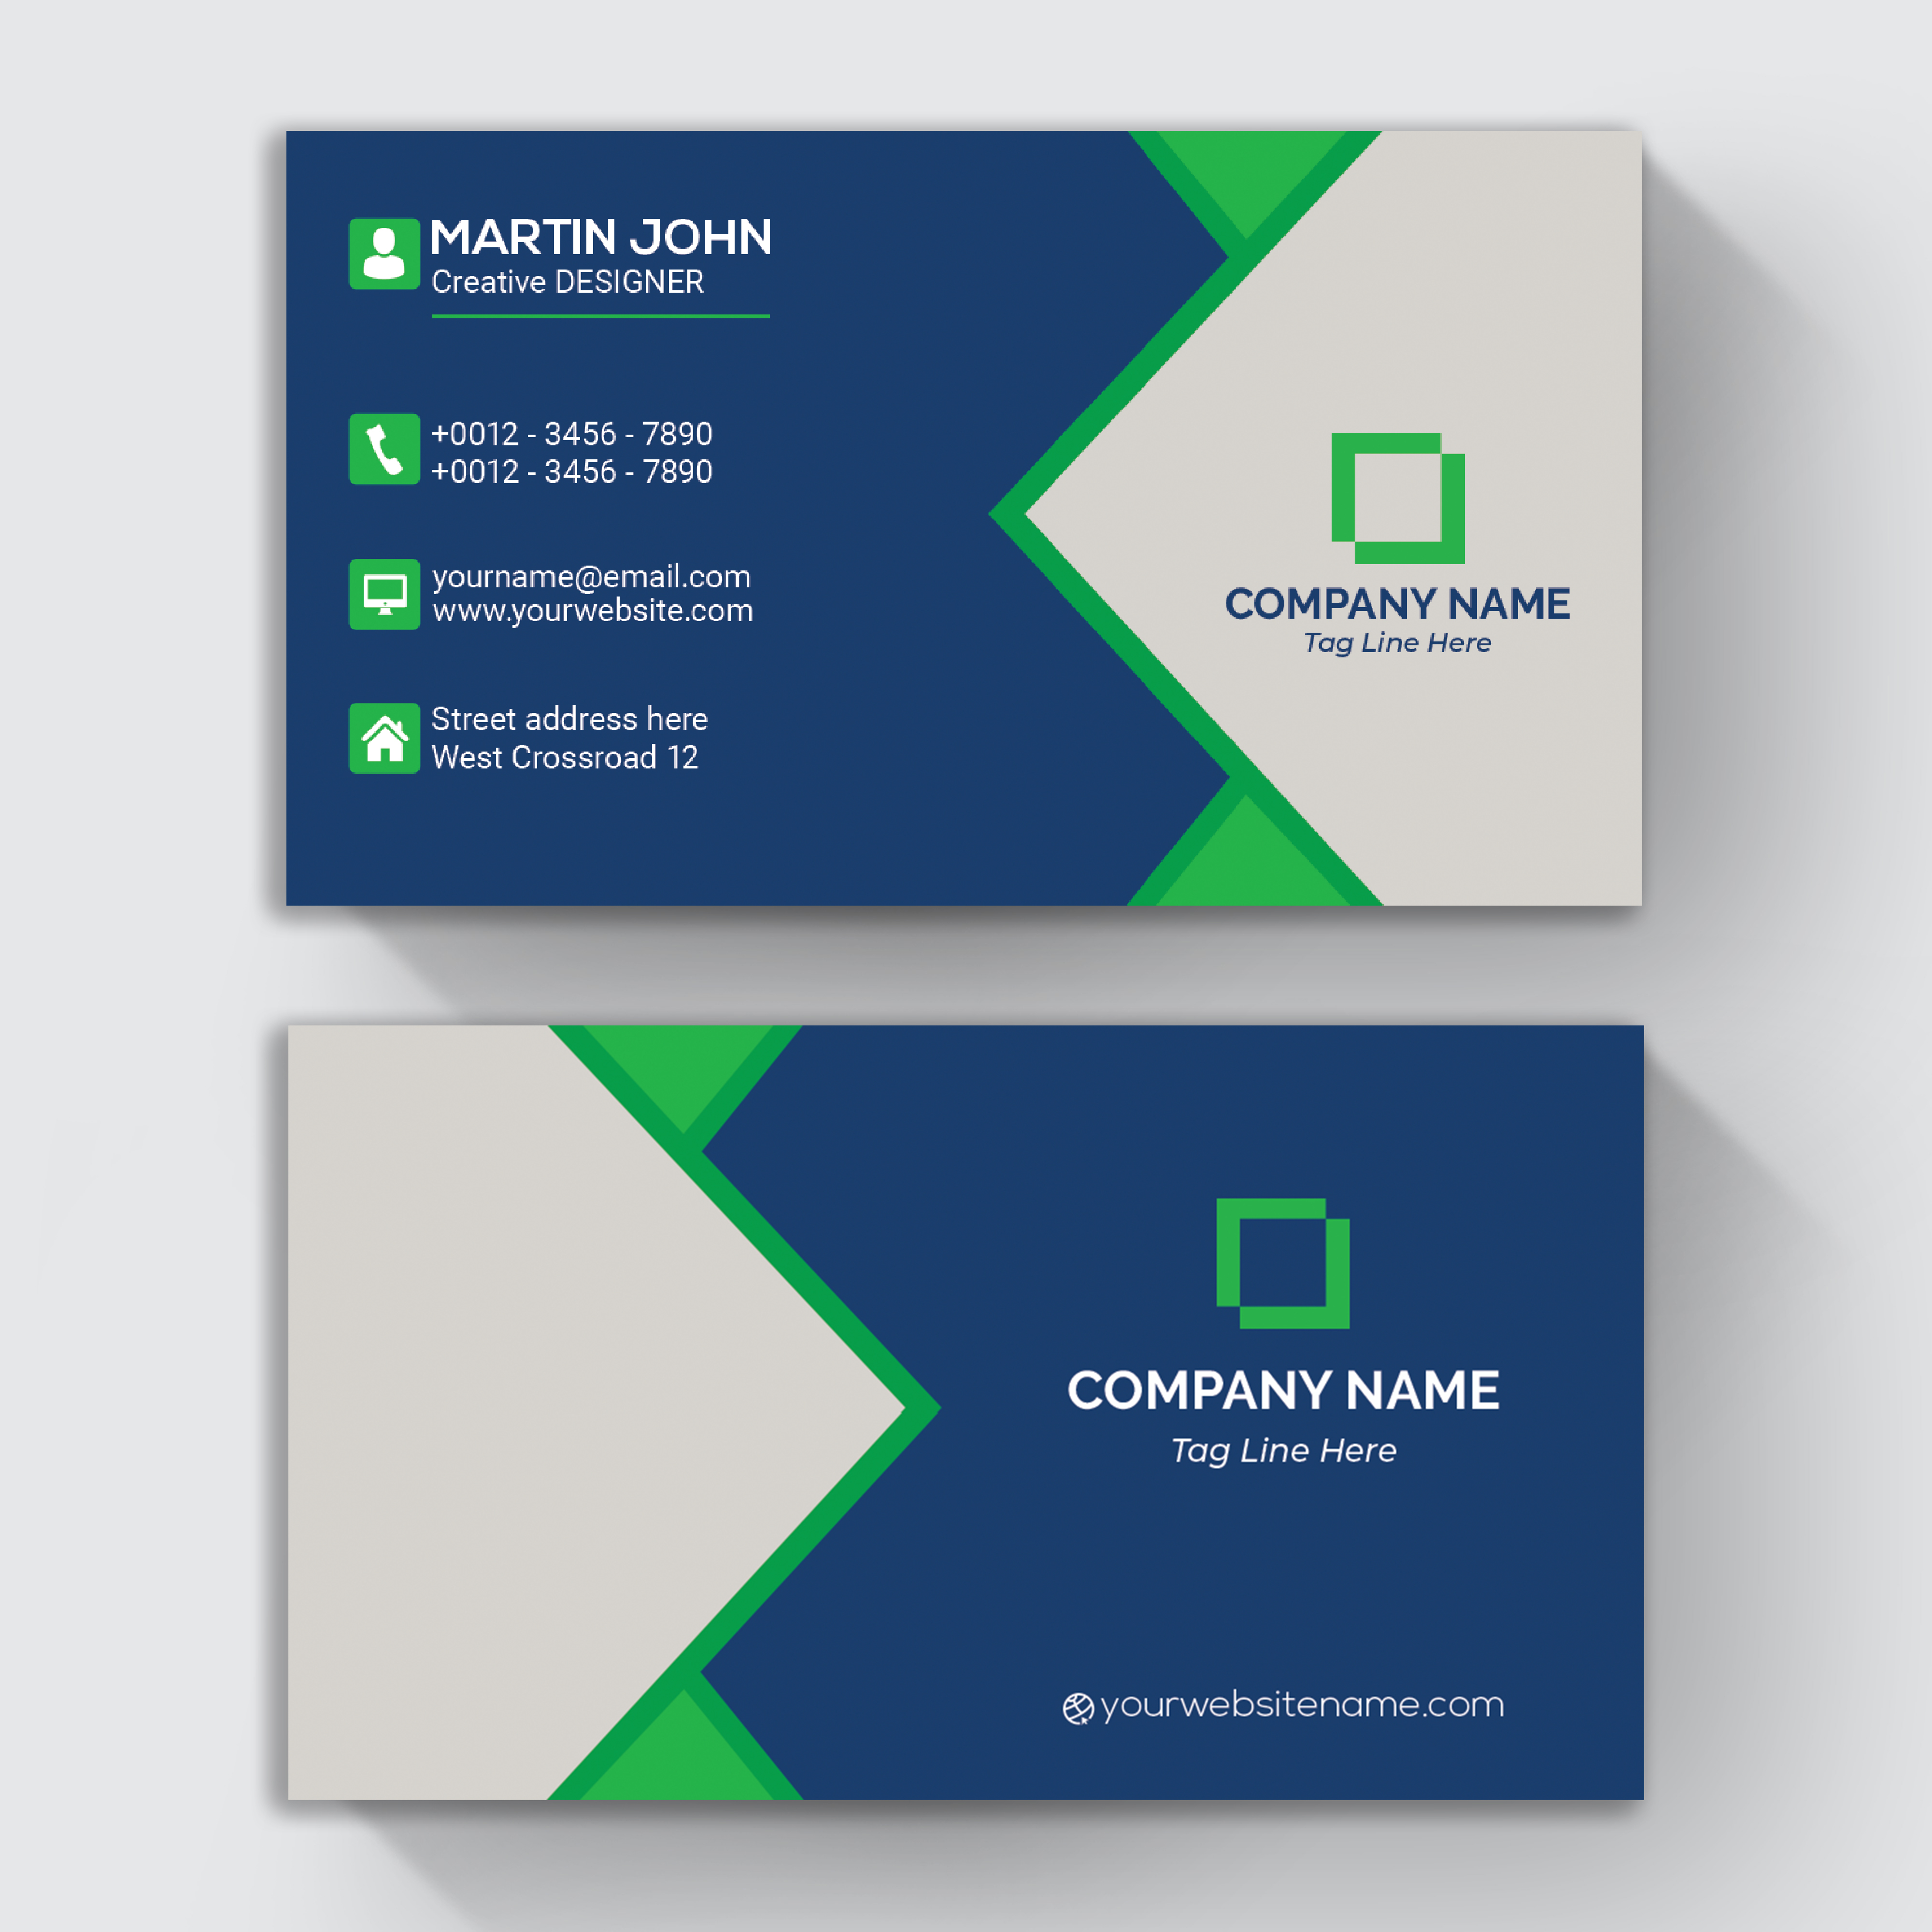 Design eye-catching business card,  visiting card in a Day